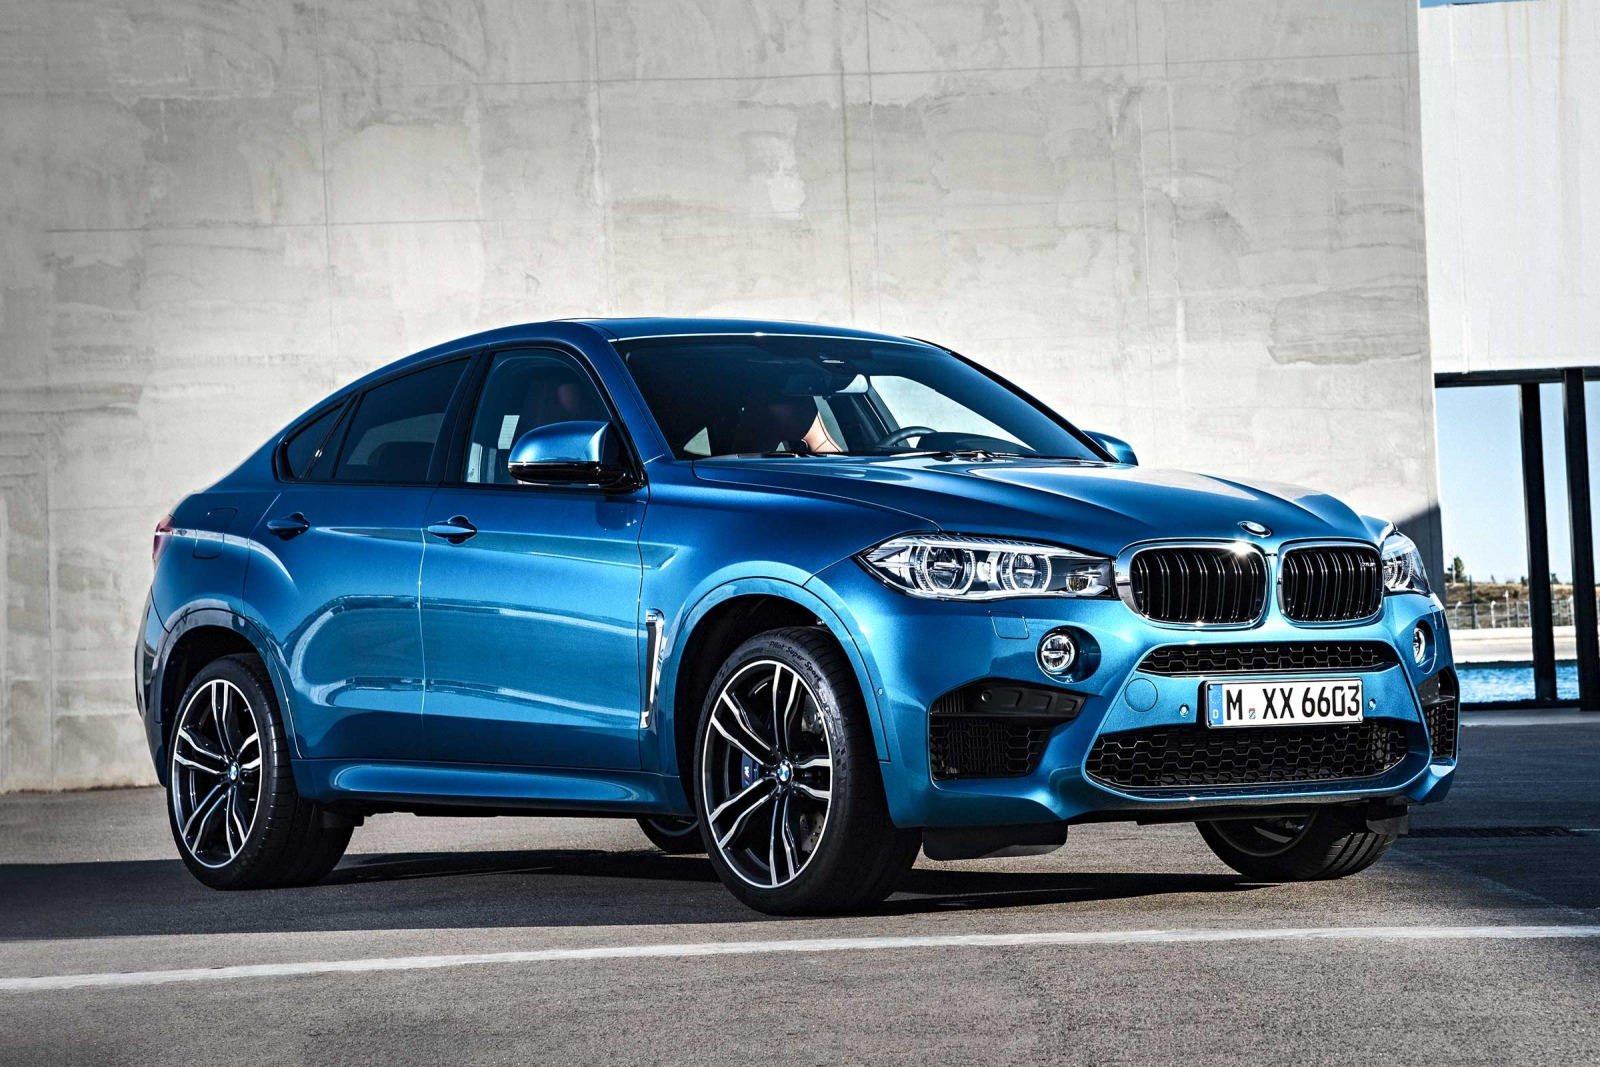 2018 Bmw X6 M Suv Review Trims Specs And Price Carbuzz